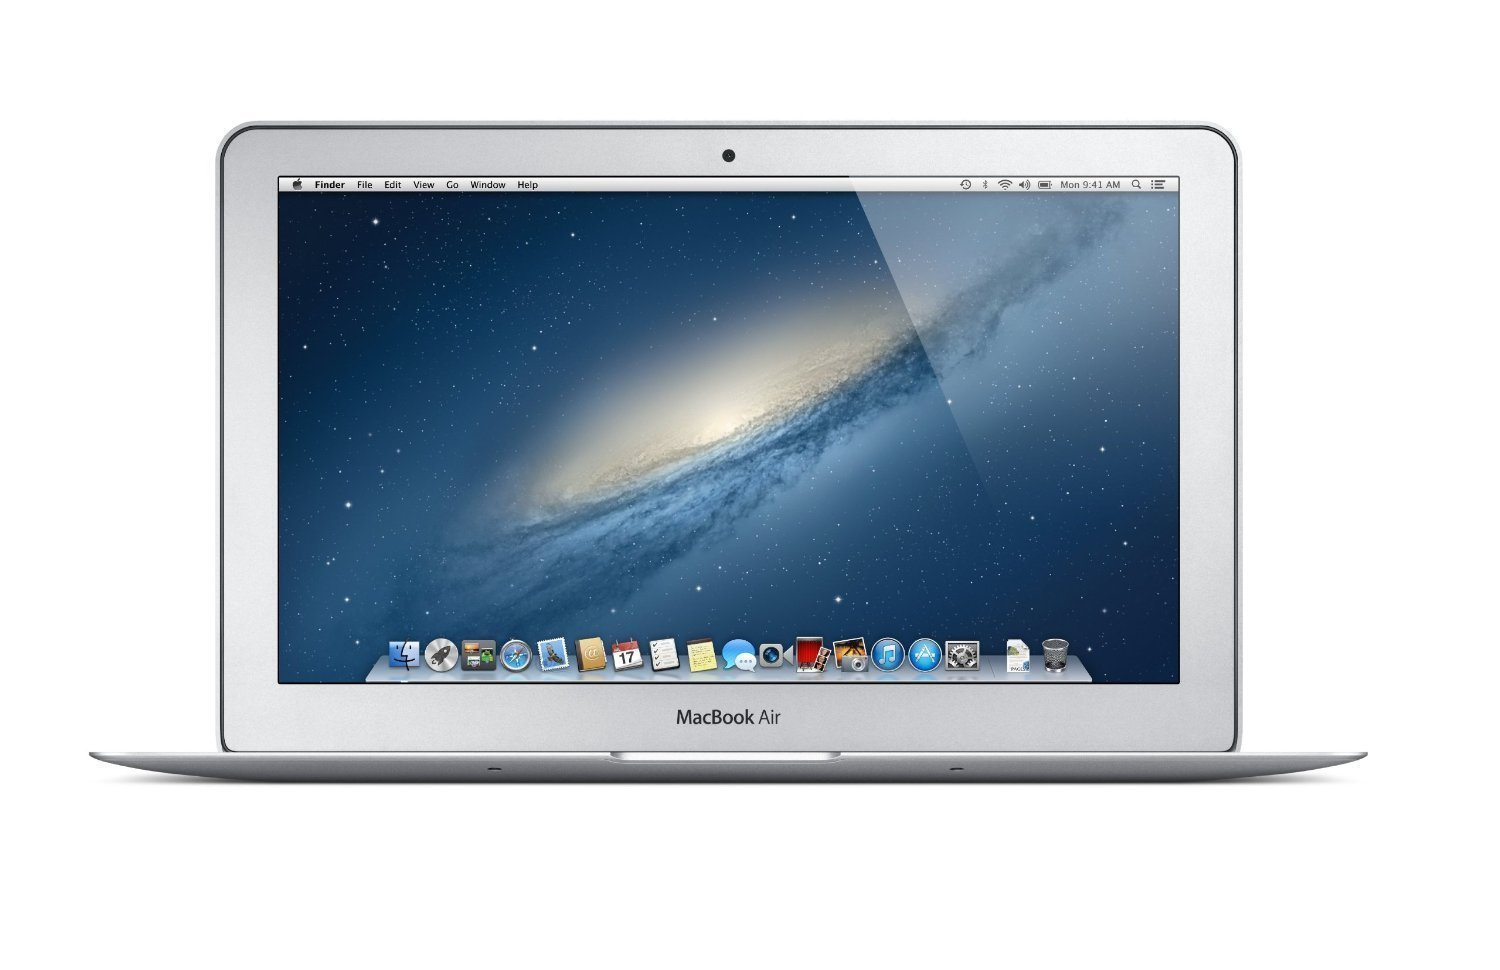 Apple MacBook Air MD711LL B 11.6in Widescreen LED Backlit HD Laptop, Intel Dual-Core i5 up to 2.7GHz, 4GB RAM, 128GB SSD, HD Camera, USB 3.0, 802.11ac, Bluetooth, Mac OS X Renewed